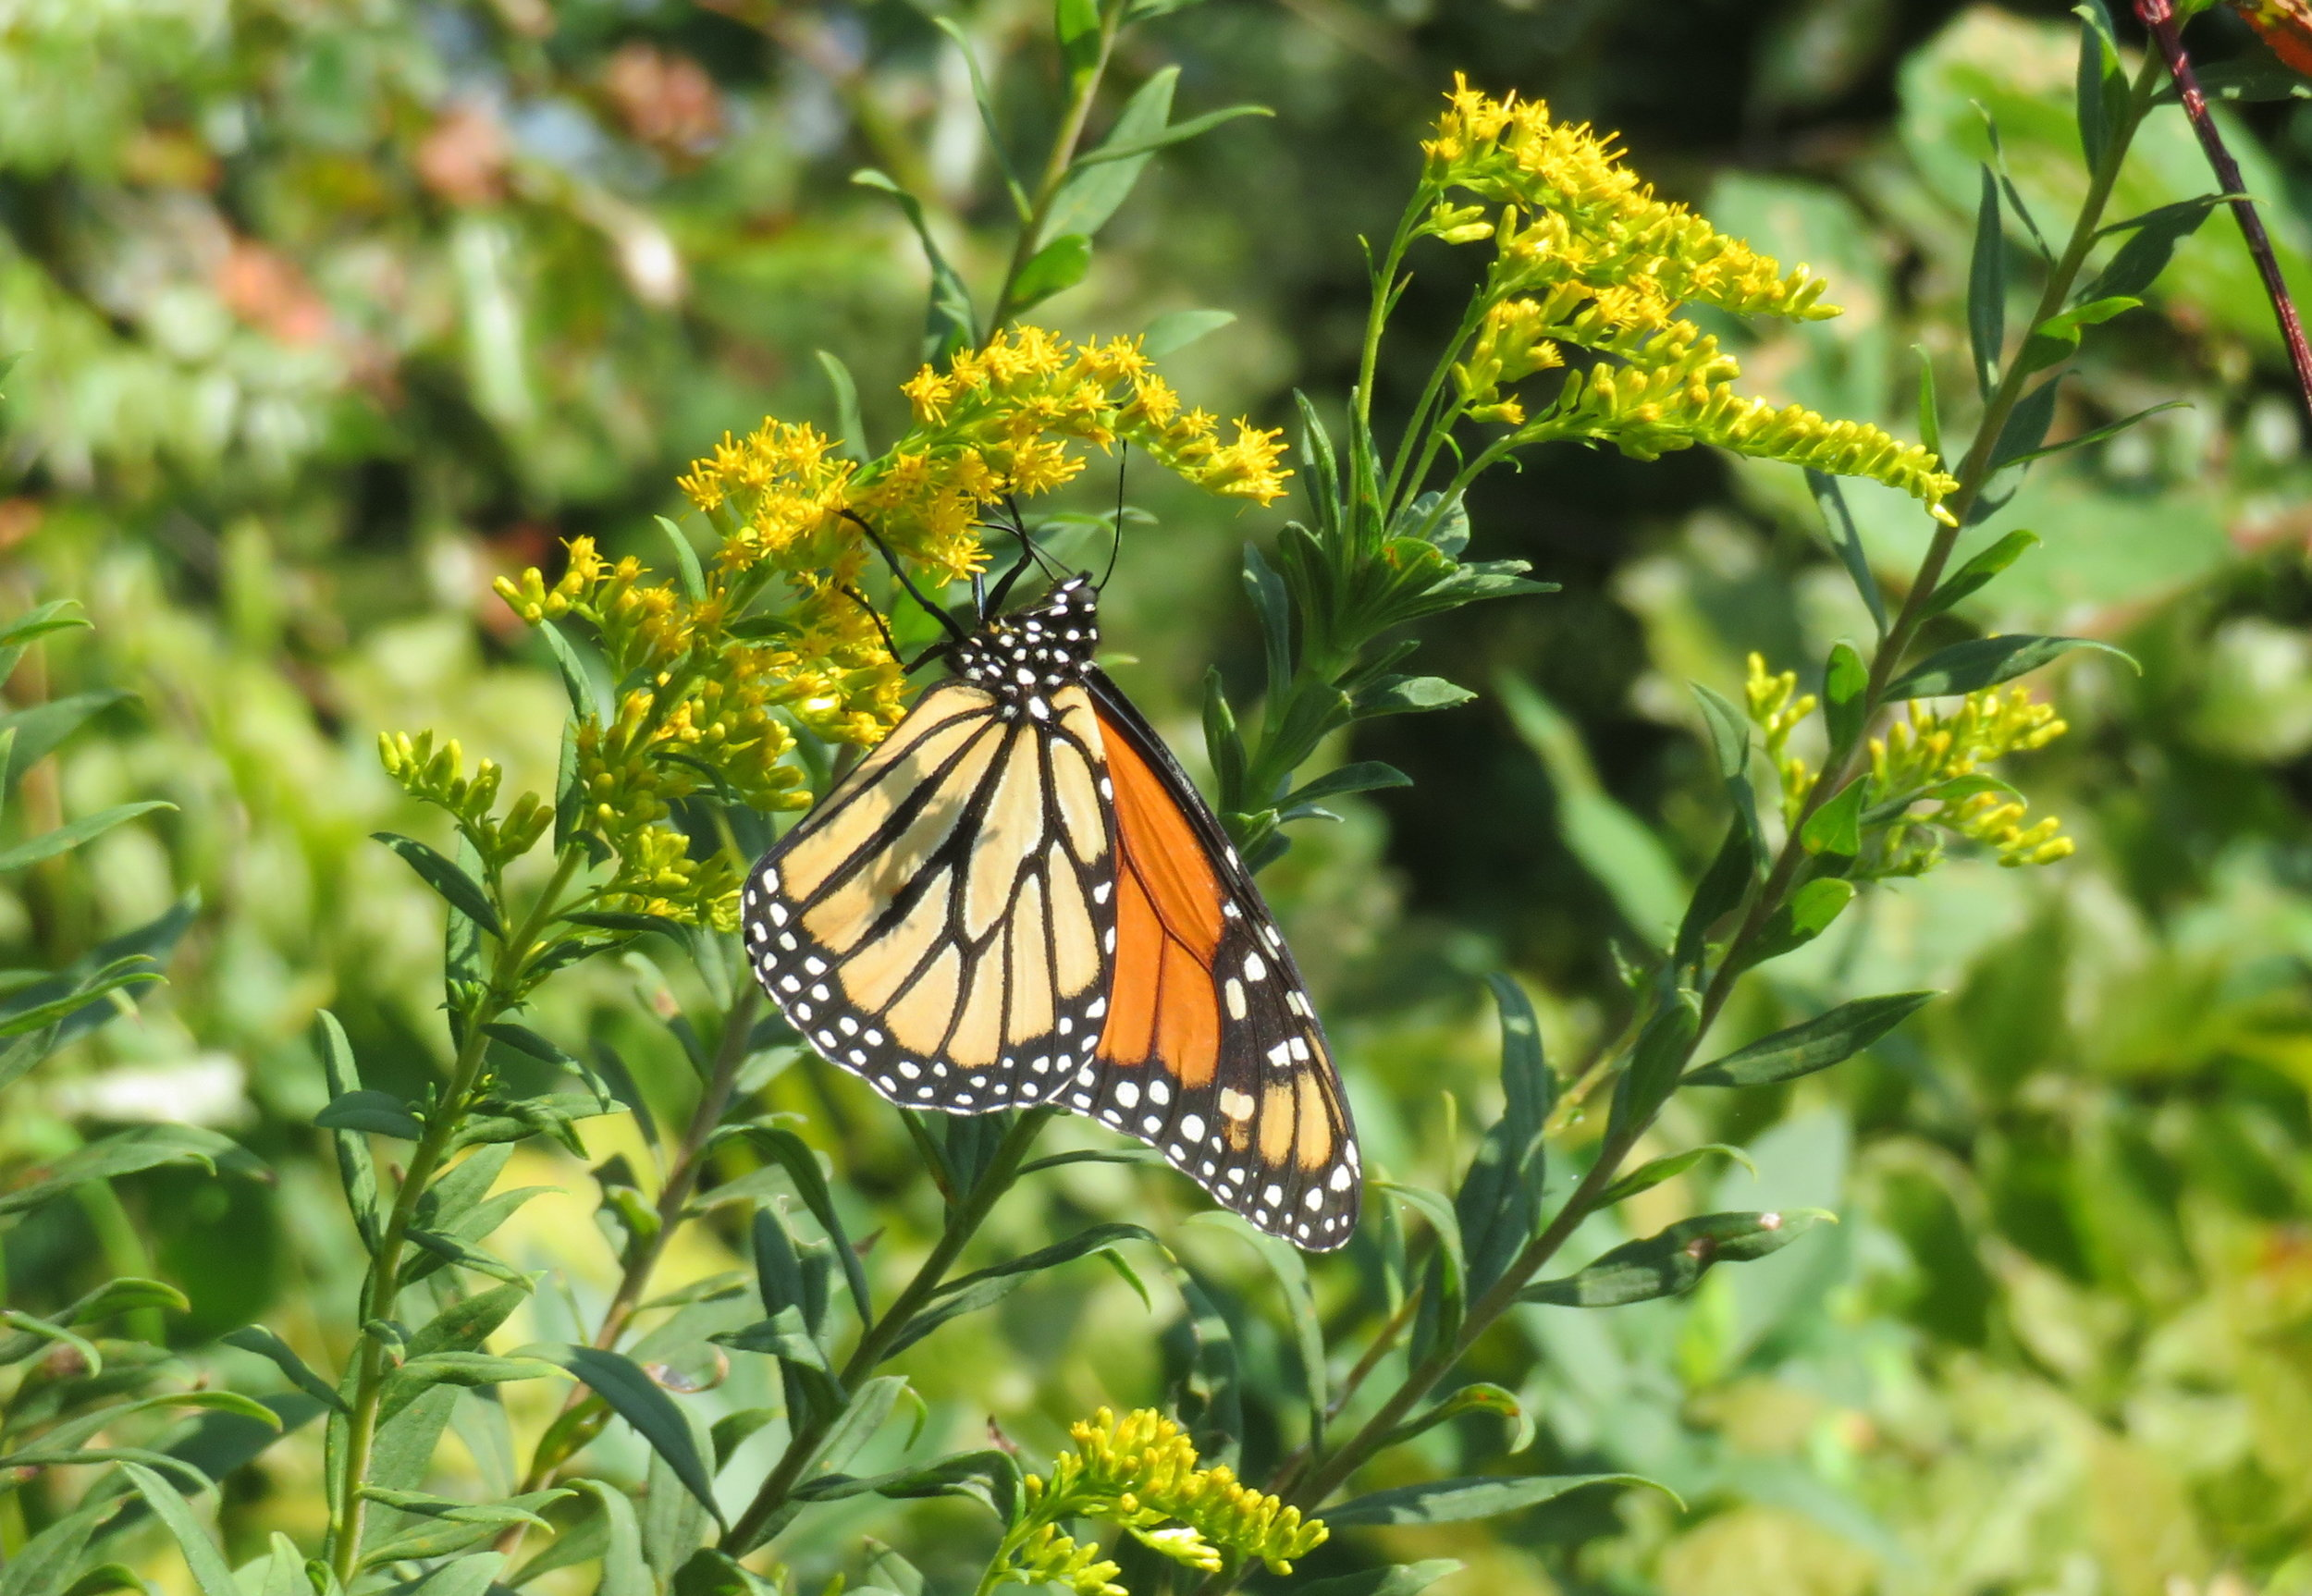 We were just in time for the beginning of the annual Monarch migration. These guys travel from Canada to Mexico this time of year.